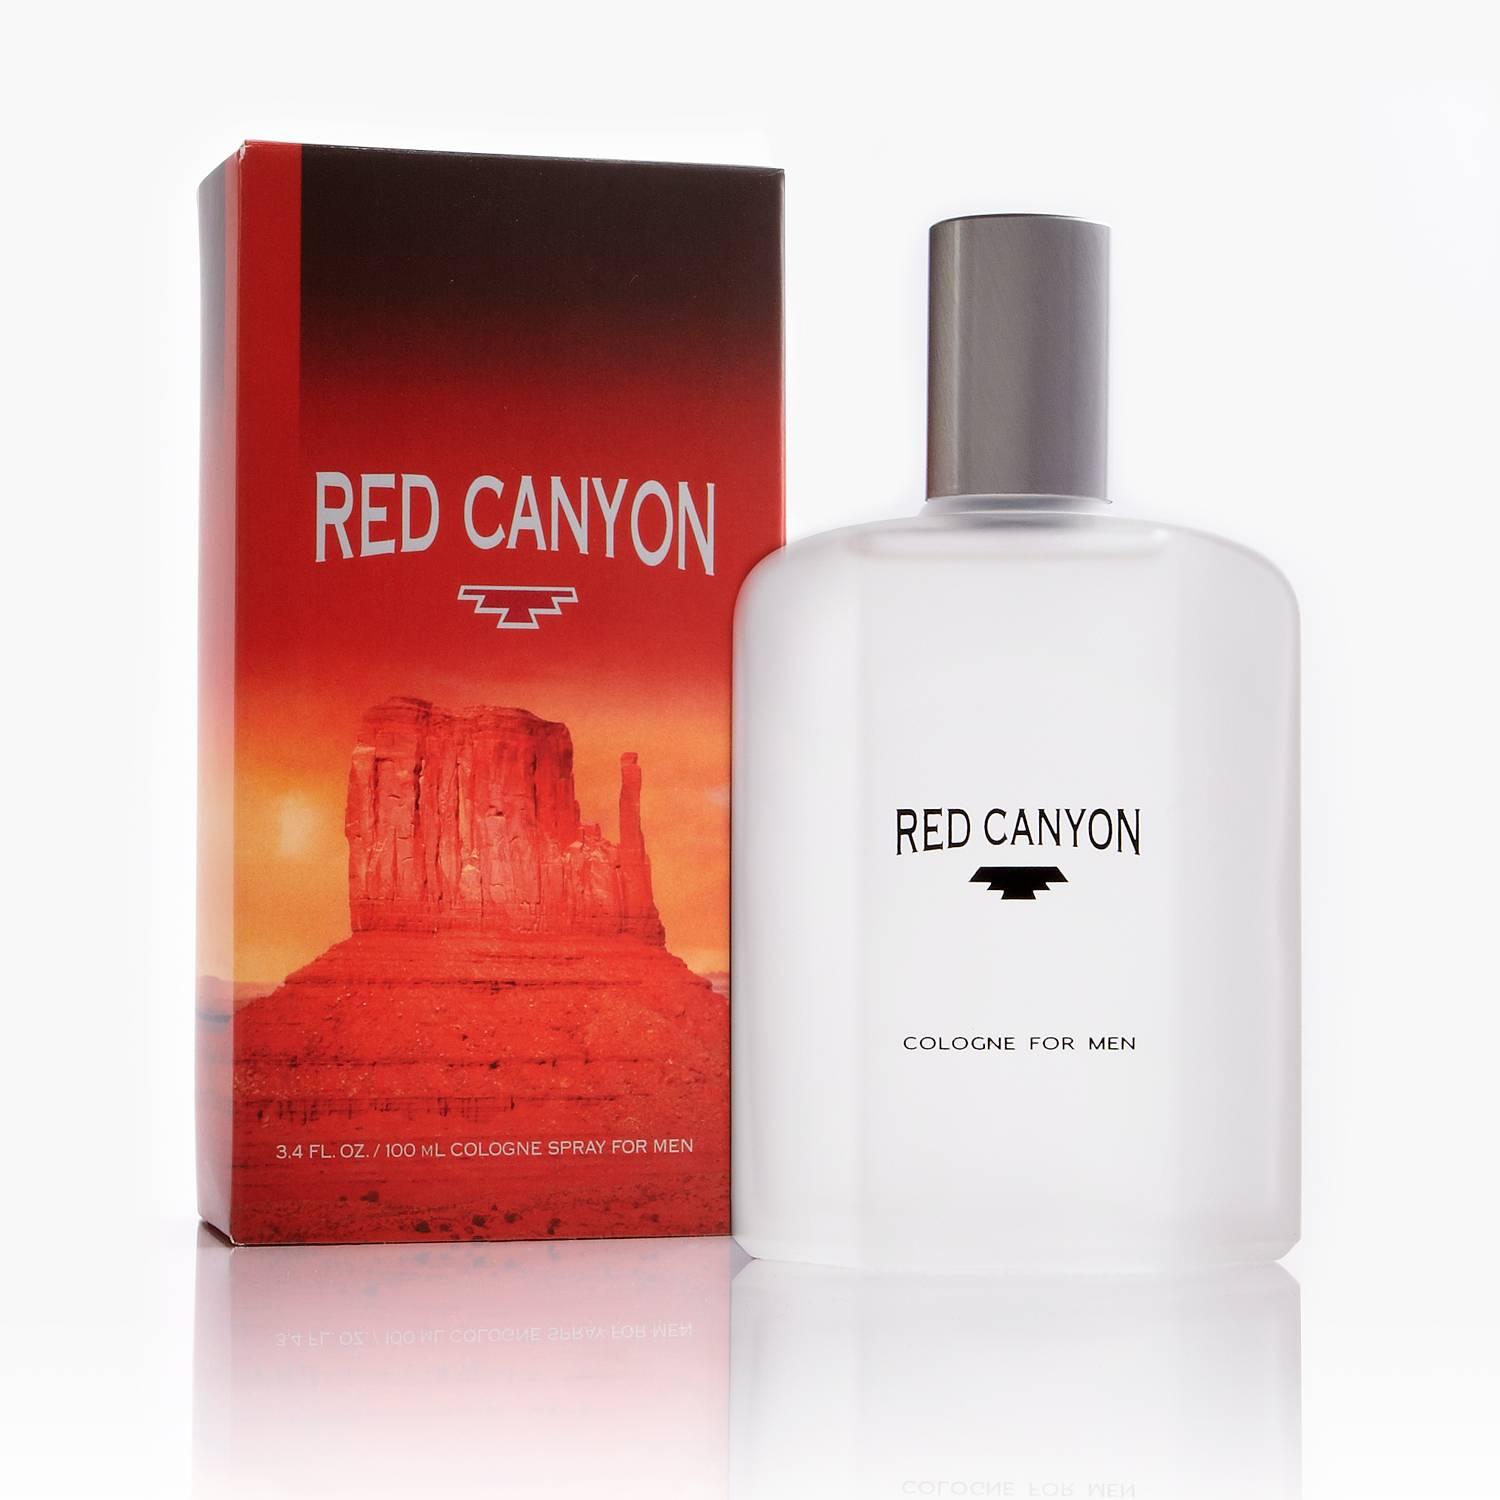 RED CANYON Men's Cologne Spray